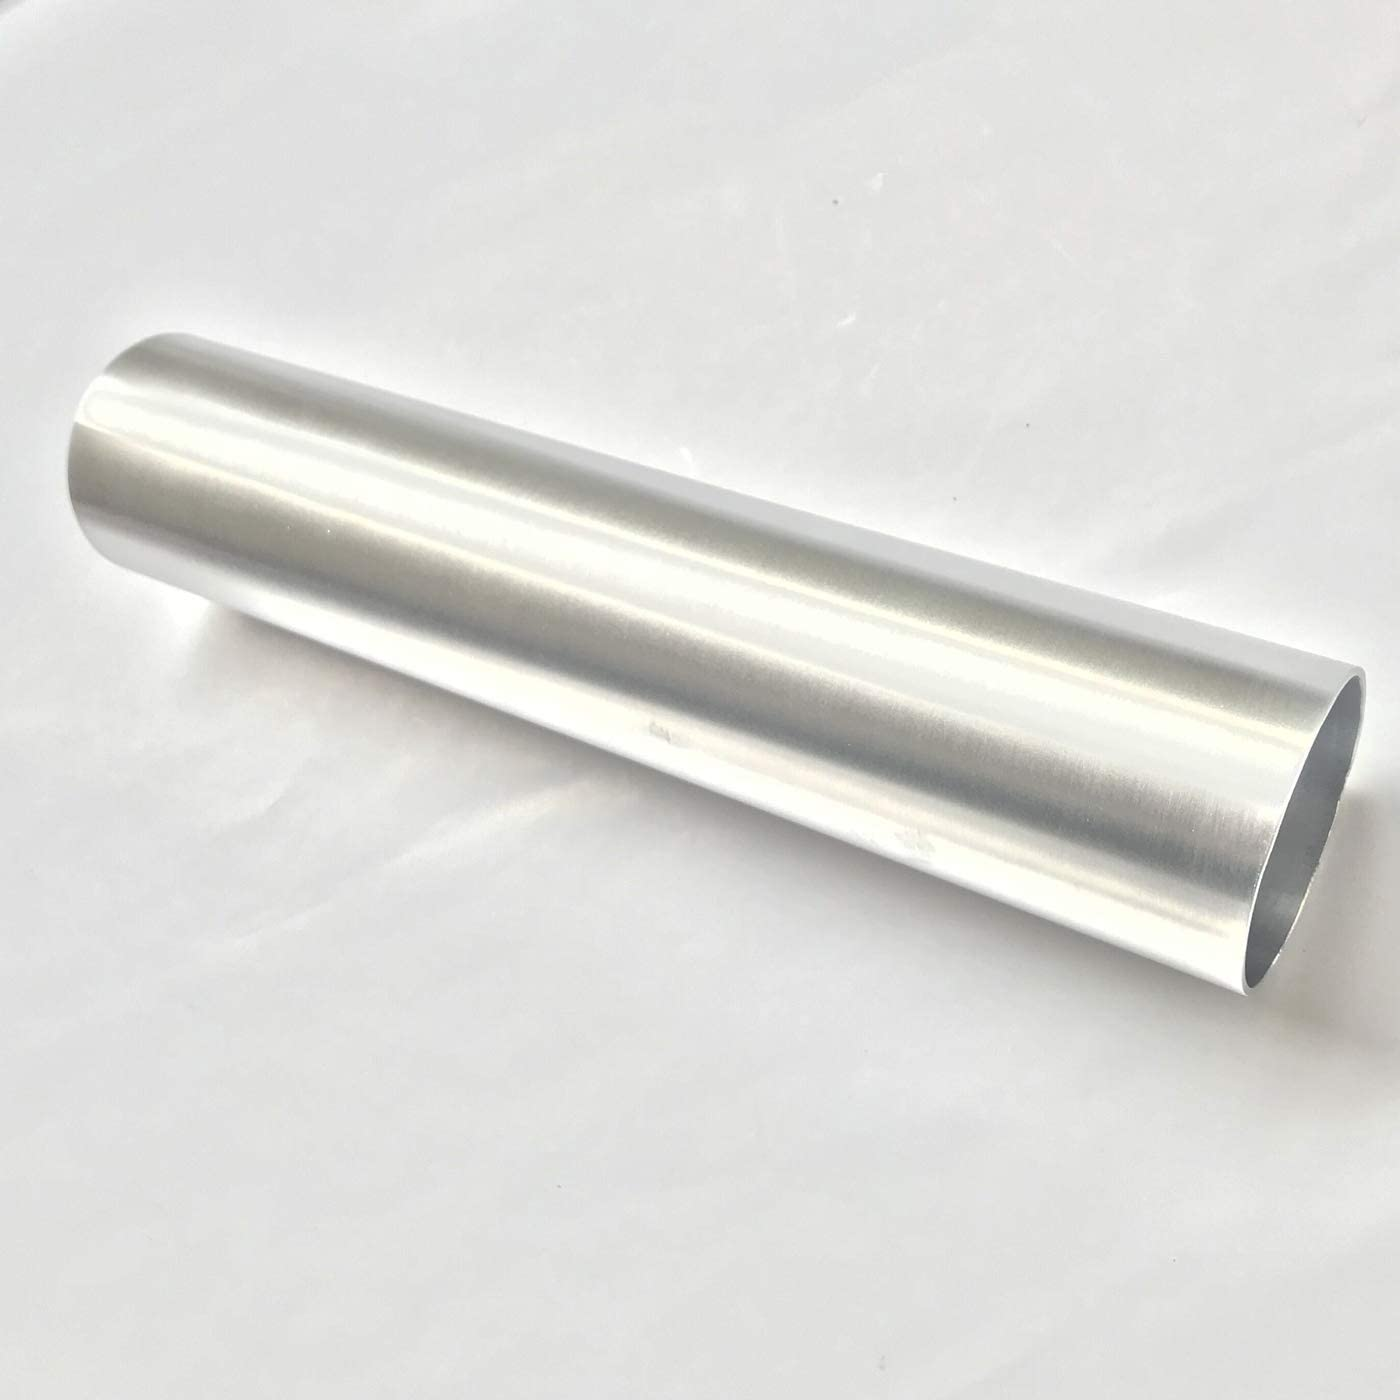 14mm OD X 11mm ID 1.5 mm THICKNESS 6061 ALUMINUM TUBE PIPE ROUND L=12 INCH